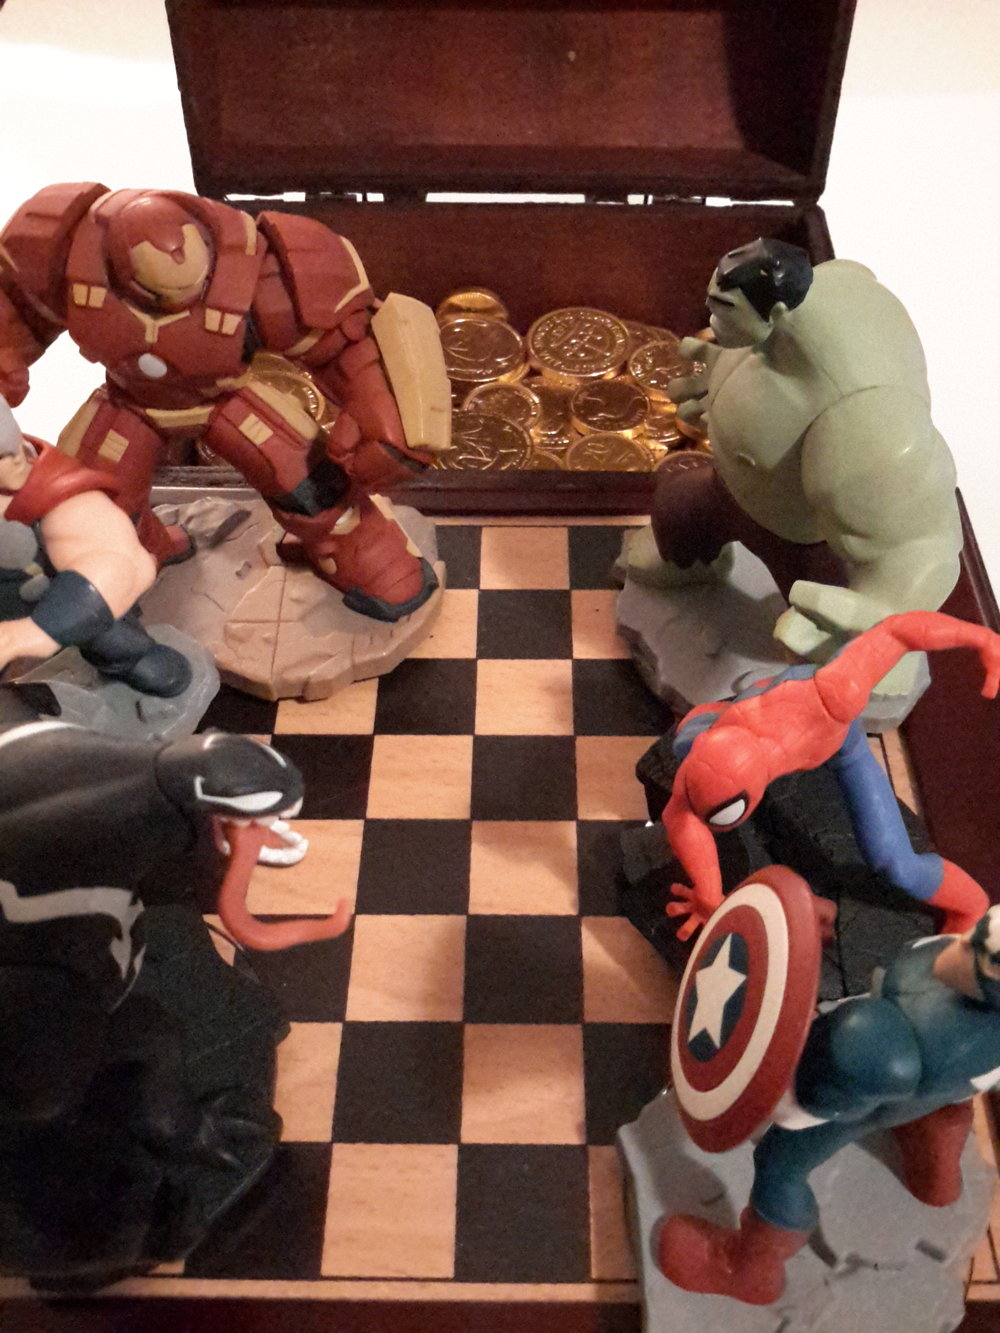 Superheroes, Gold and Chess